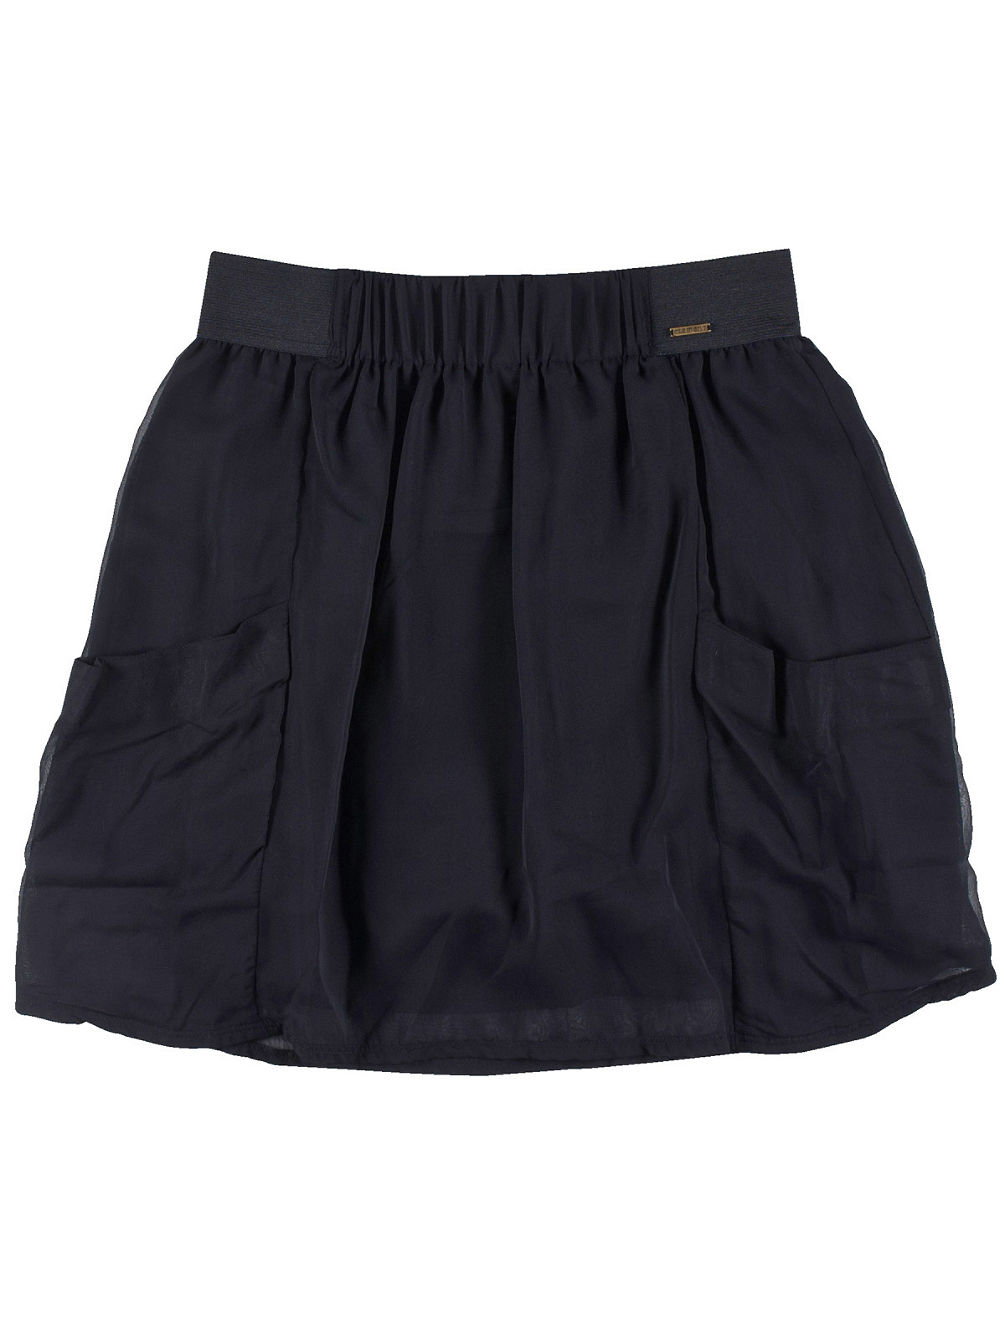 Sumiko Skirt Women